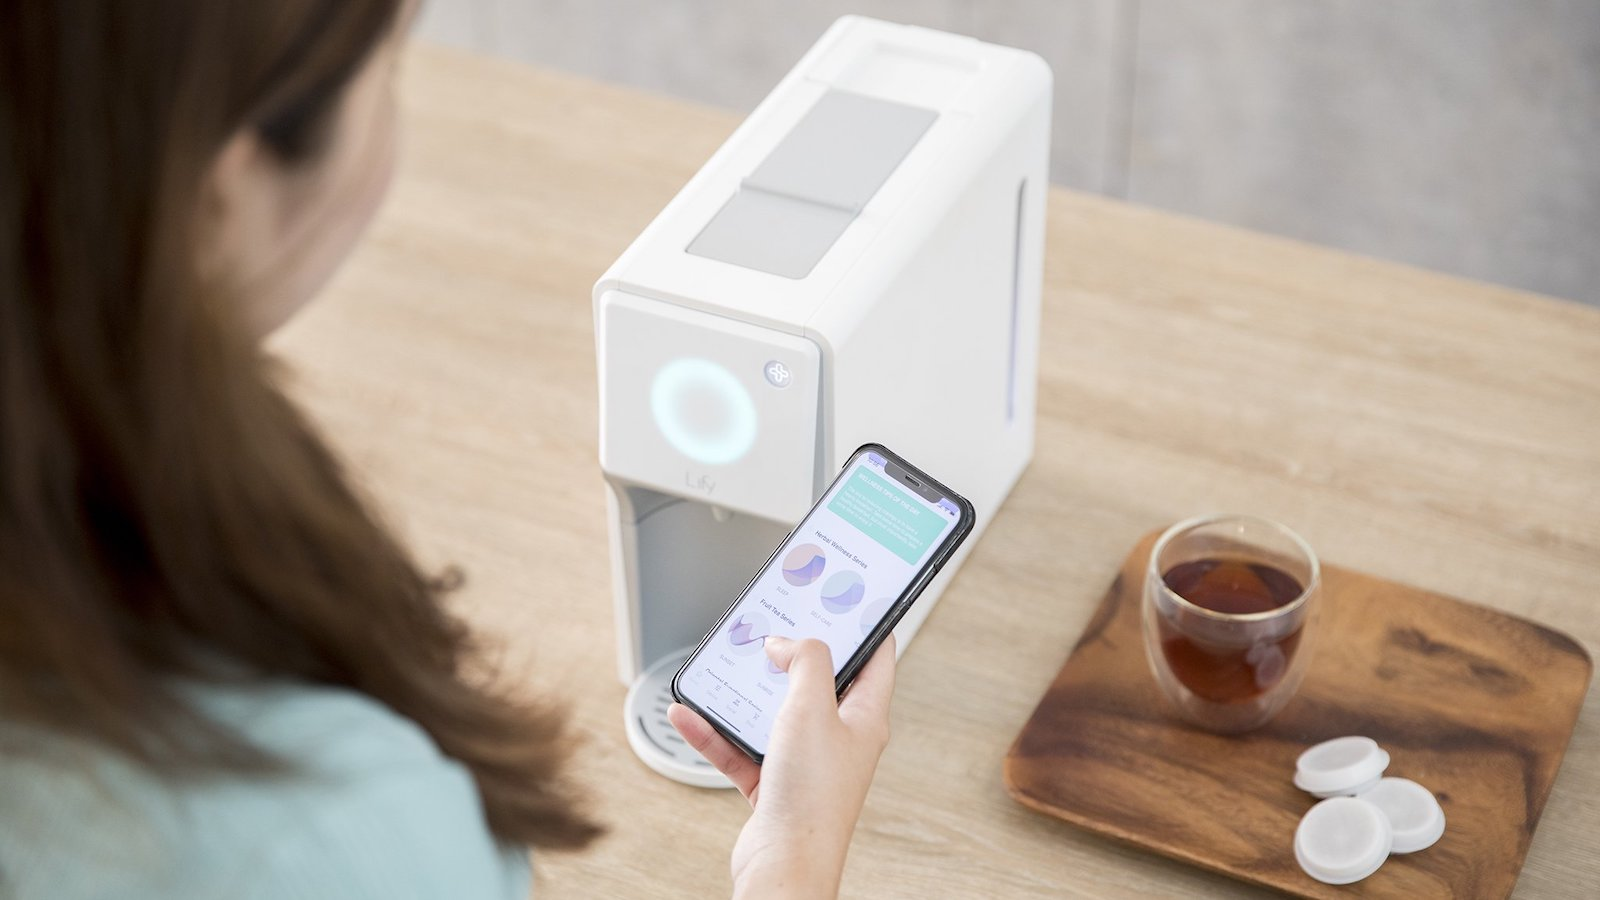 Lify Smart Herbal Brewer tea maker uses patented bloom and brew herbal infusion technology